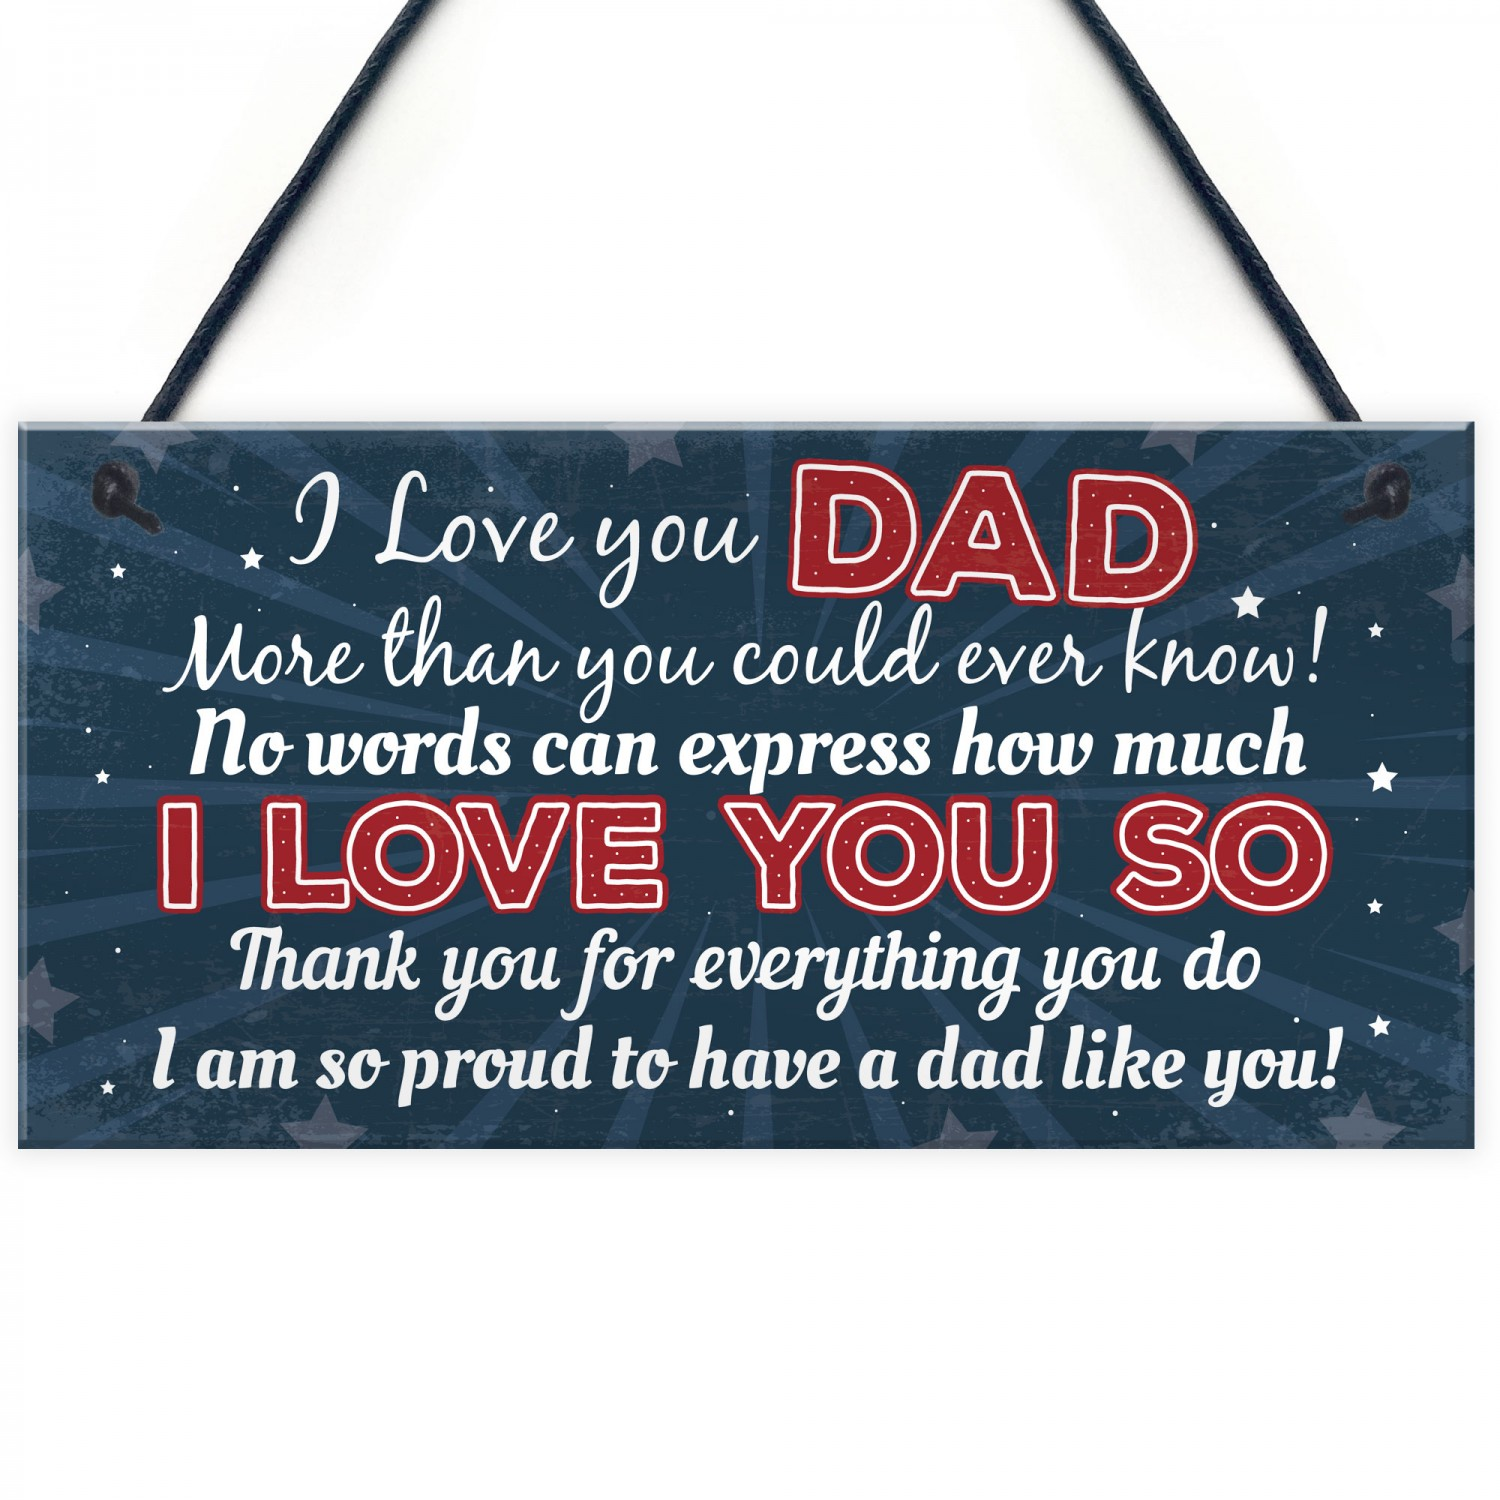 Christmas Ideas For Dad From Daughter.Fathers Day Birthday Christmas Gift For Dad Gift From Daughter